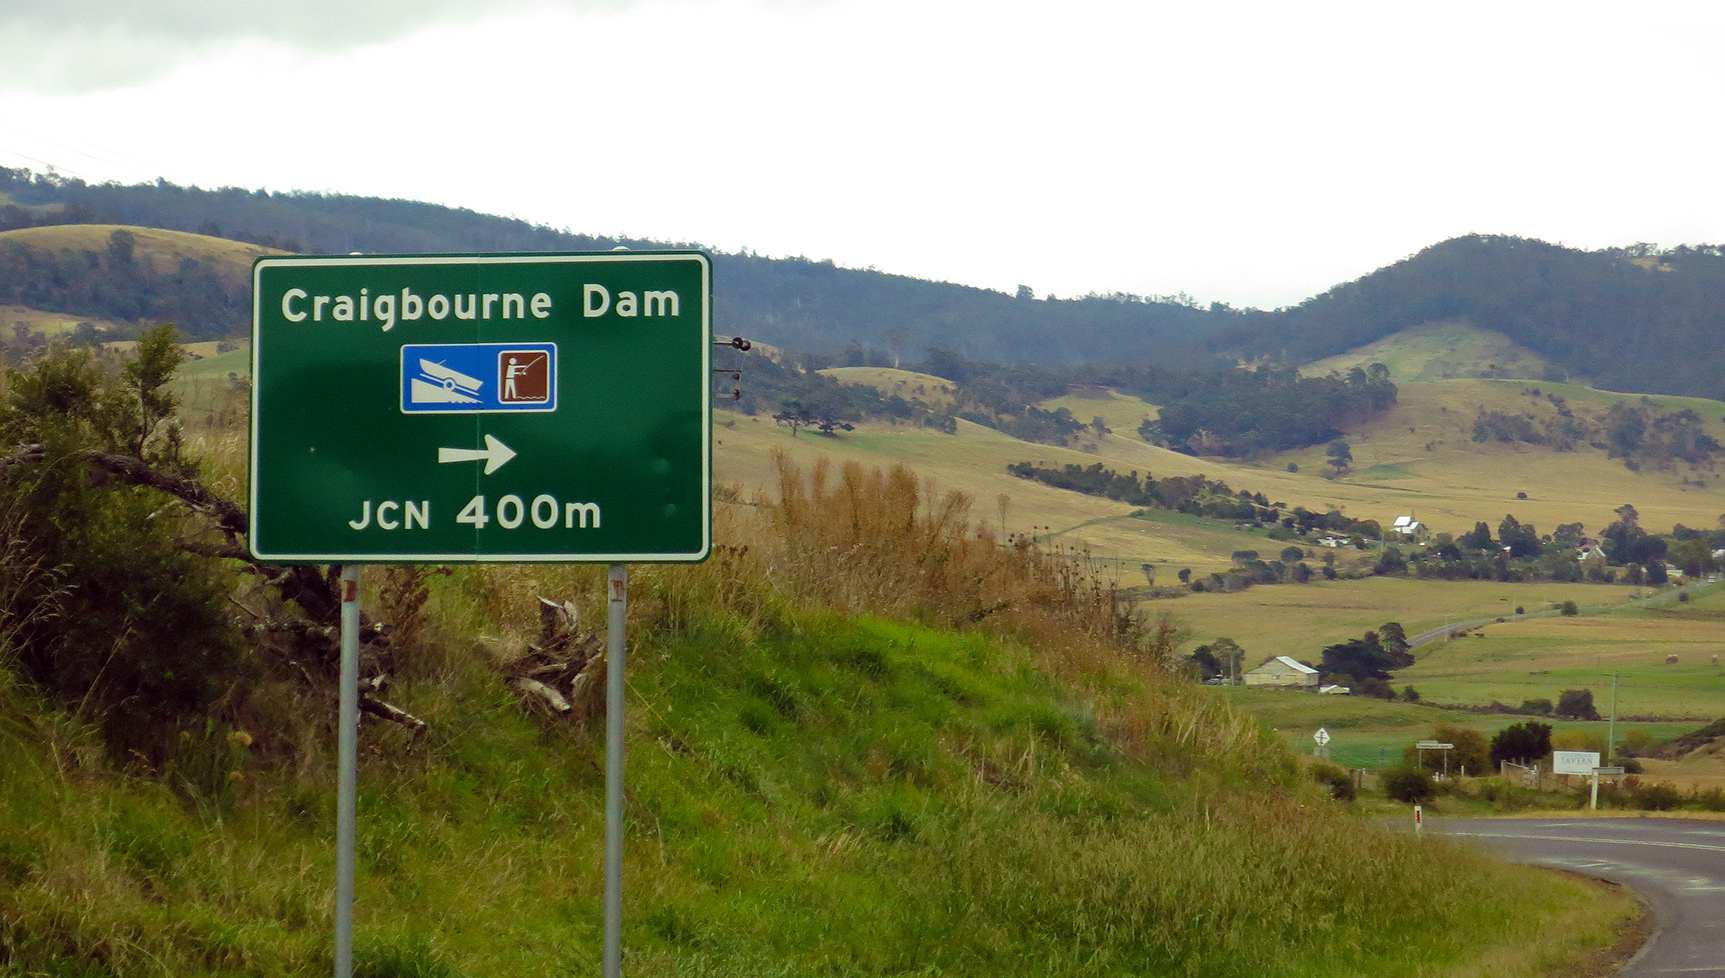 Craigbourne is easy to find and get to and lies about an hour out of the centre of Hobart.